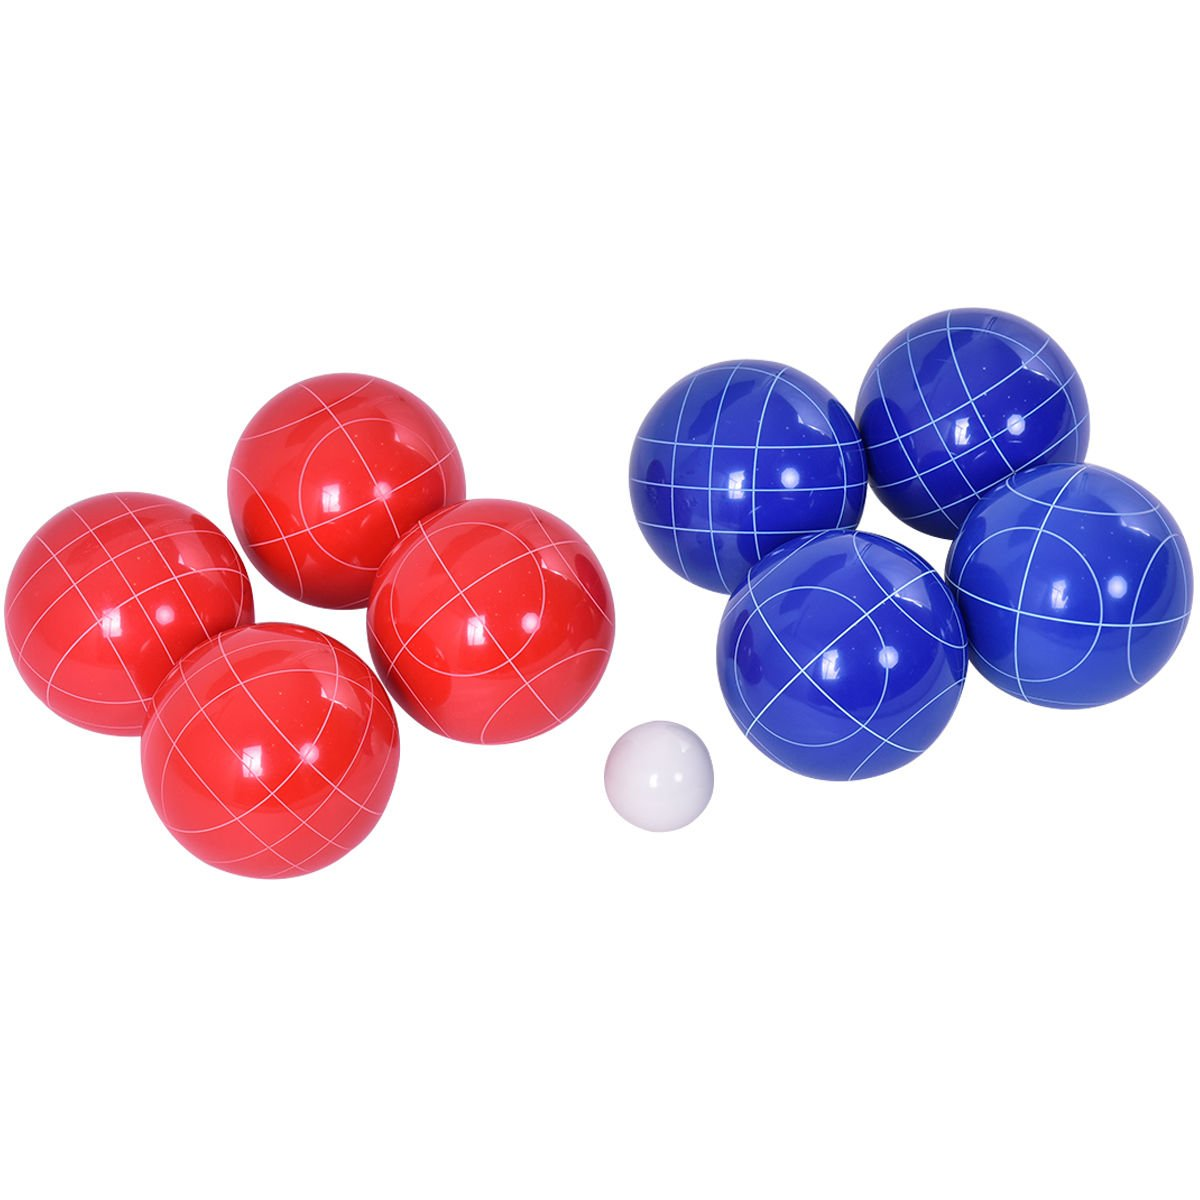 Globe House Products GHP 8-Pcs Full-Size 90mm Red & Blue Bocce Ball Set with White Pallino Object Ball